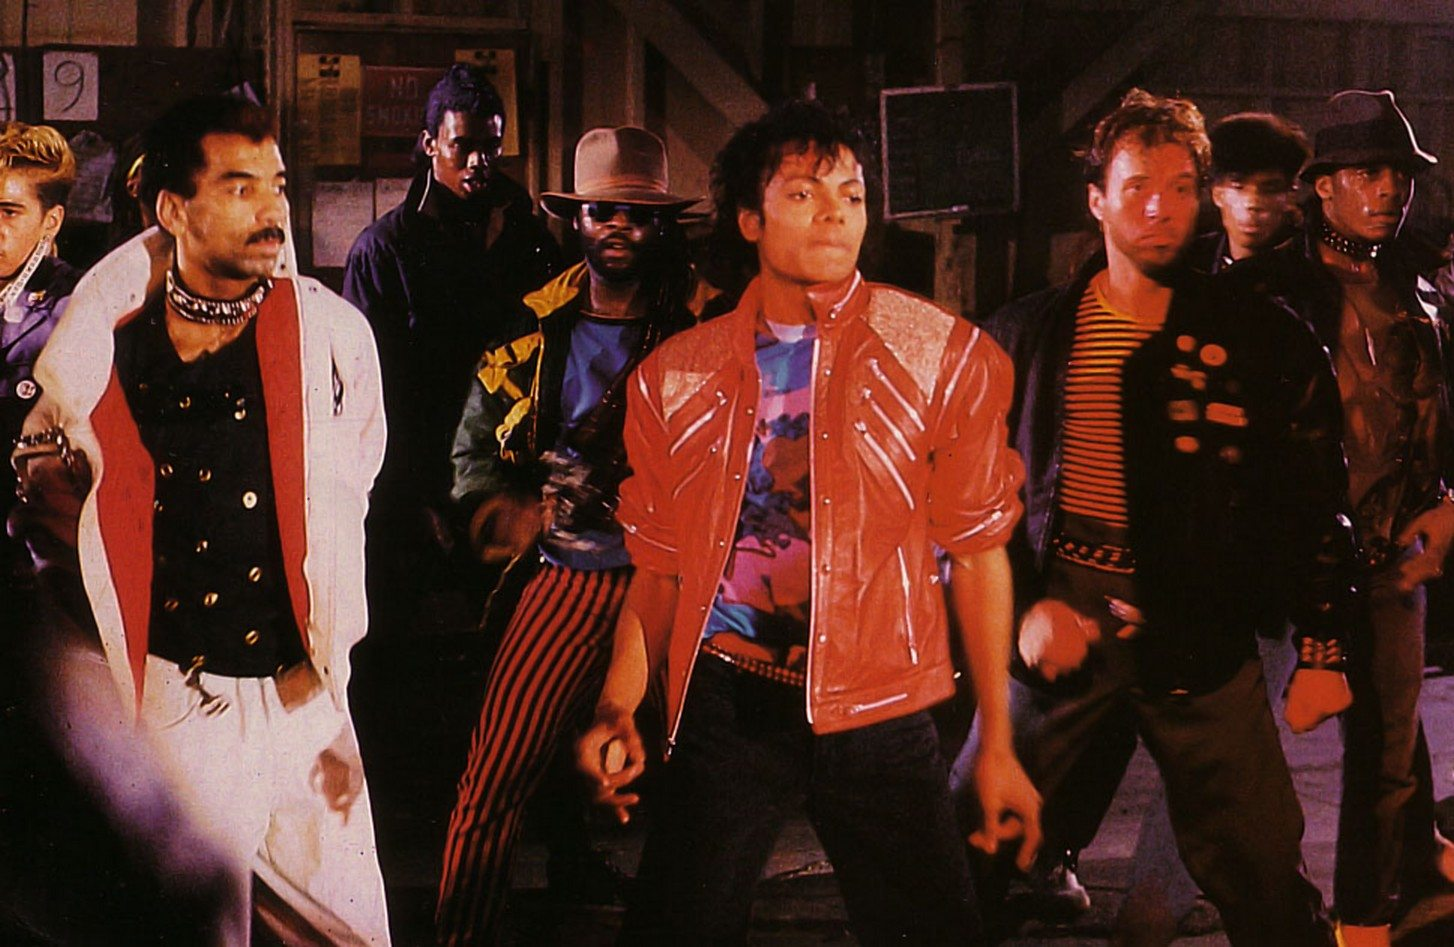 song analysis micheal jackson beat it Misheard song lyrics, performed by michael jackson  beat it no one wants to  be defeated (suggest different misheard lyrics) (suggest correction) beat it.